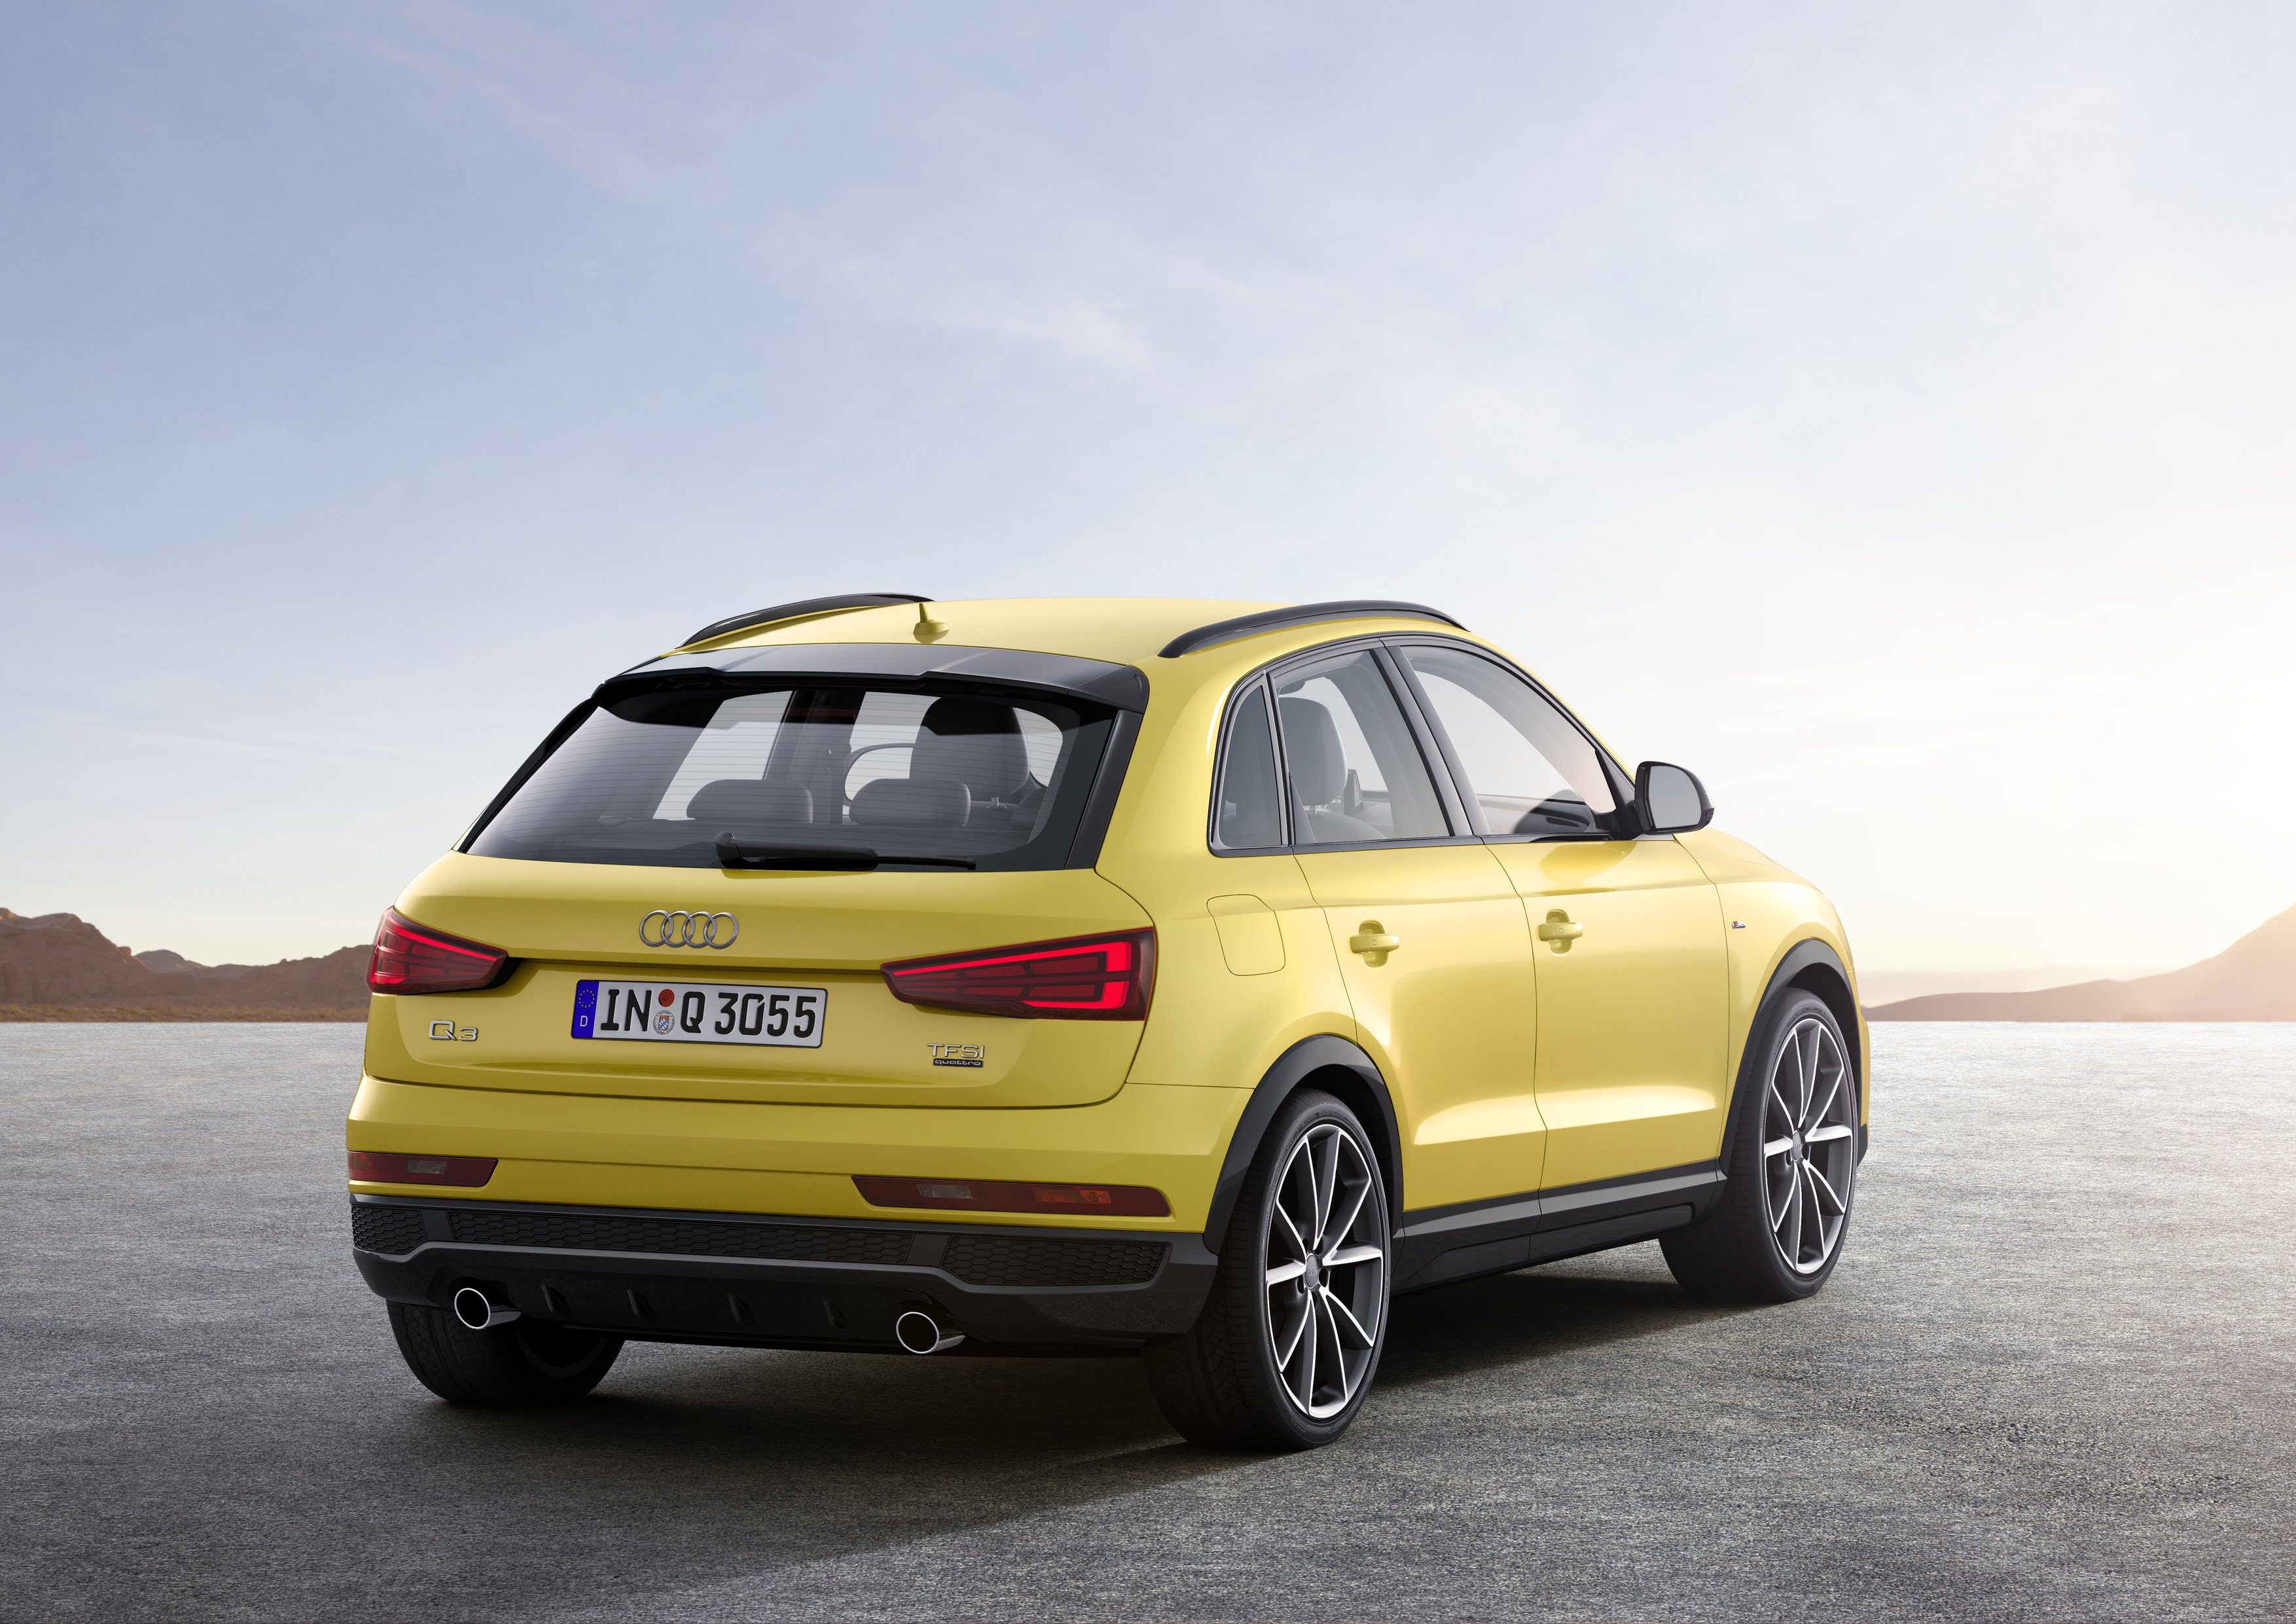 2018 Audi Q3 e-tron Could Have 250 HP, SUV Will Become ...